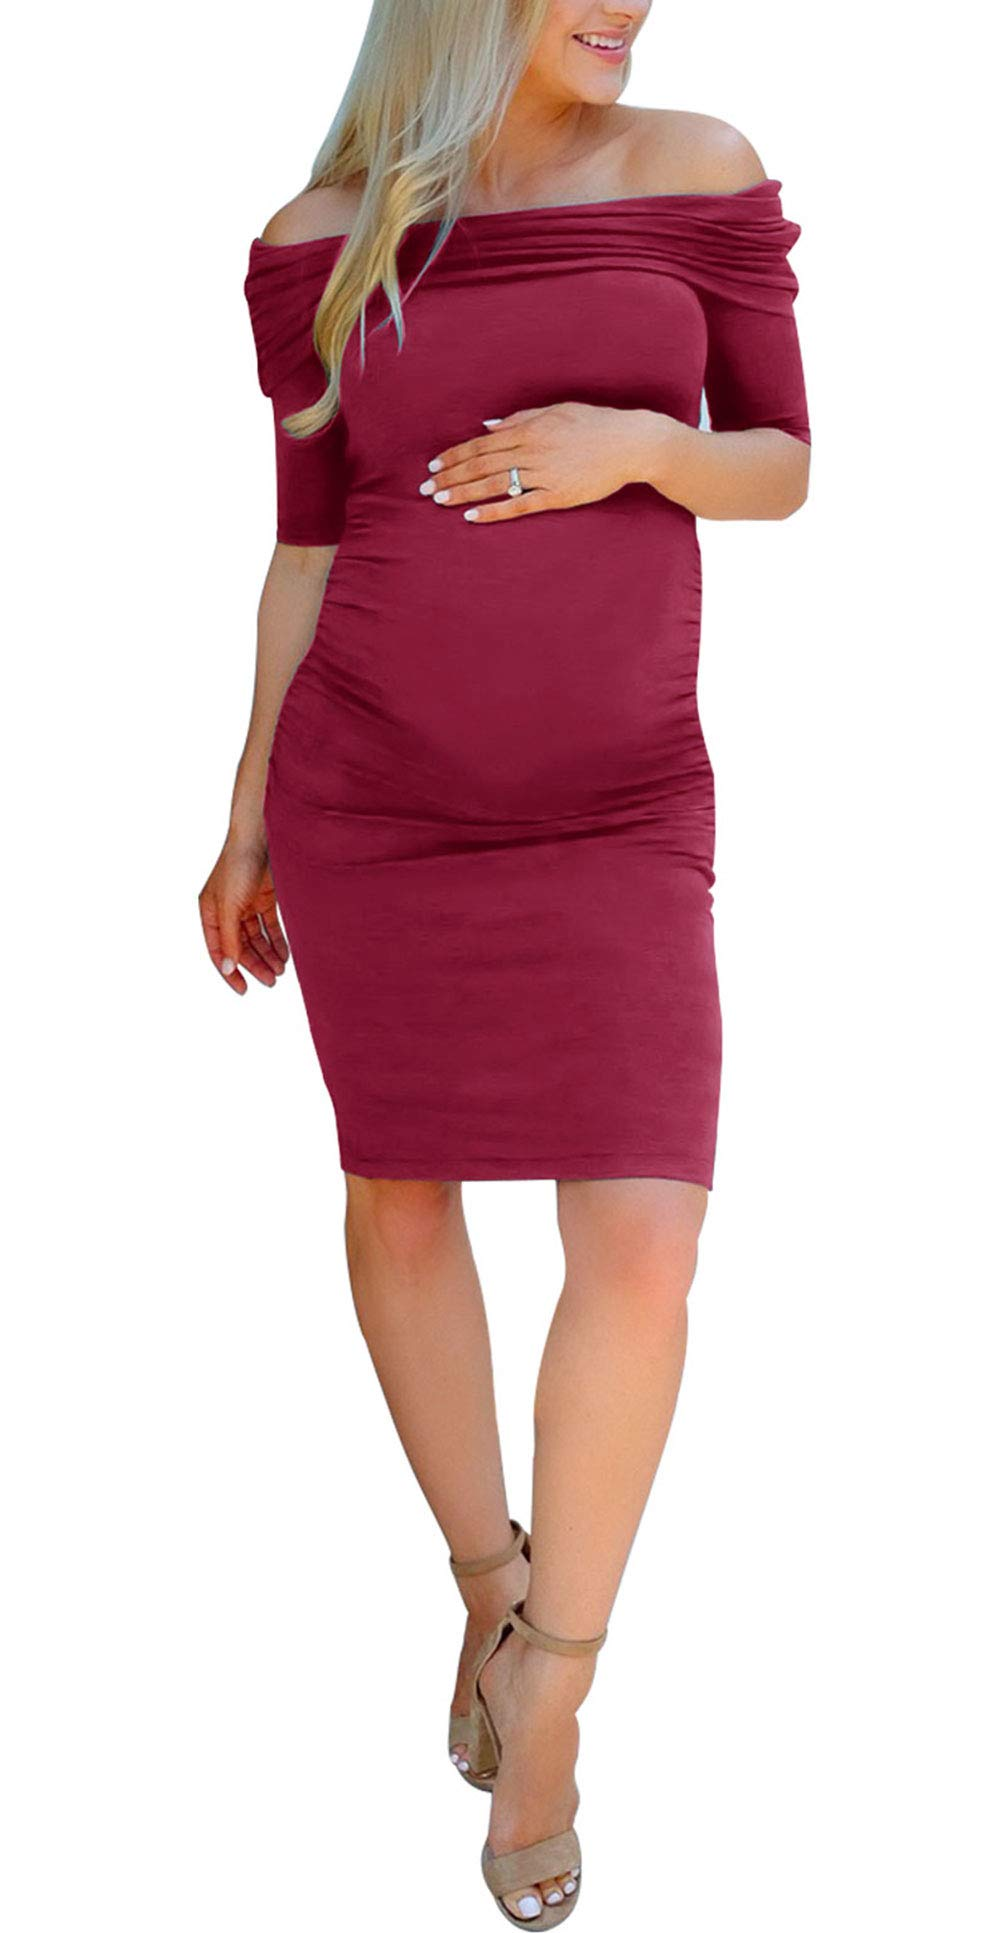 LEANI Women's Off Shoulder Short Sleeve Ruched Maternity Dress for Photography Baby Shower